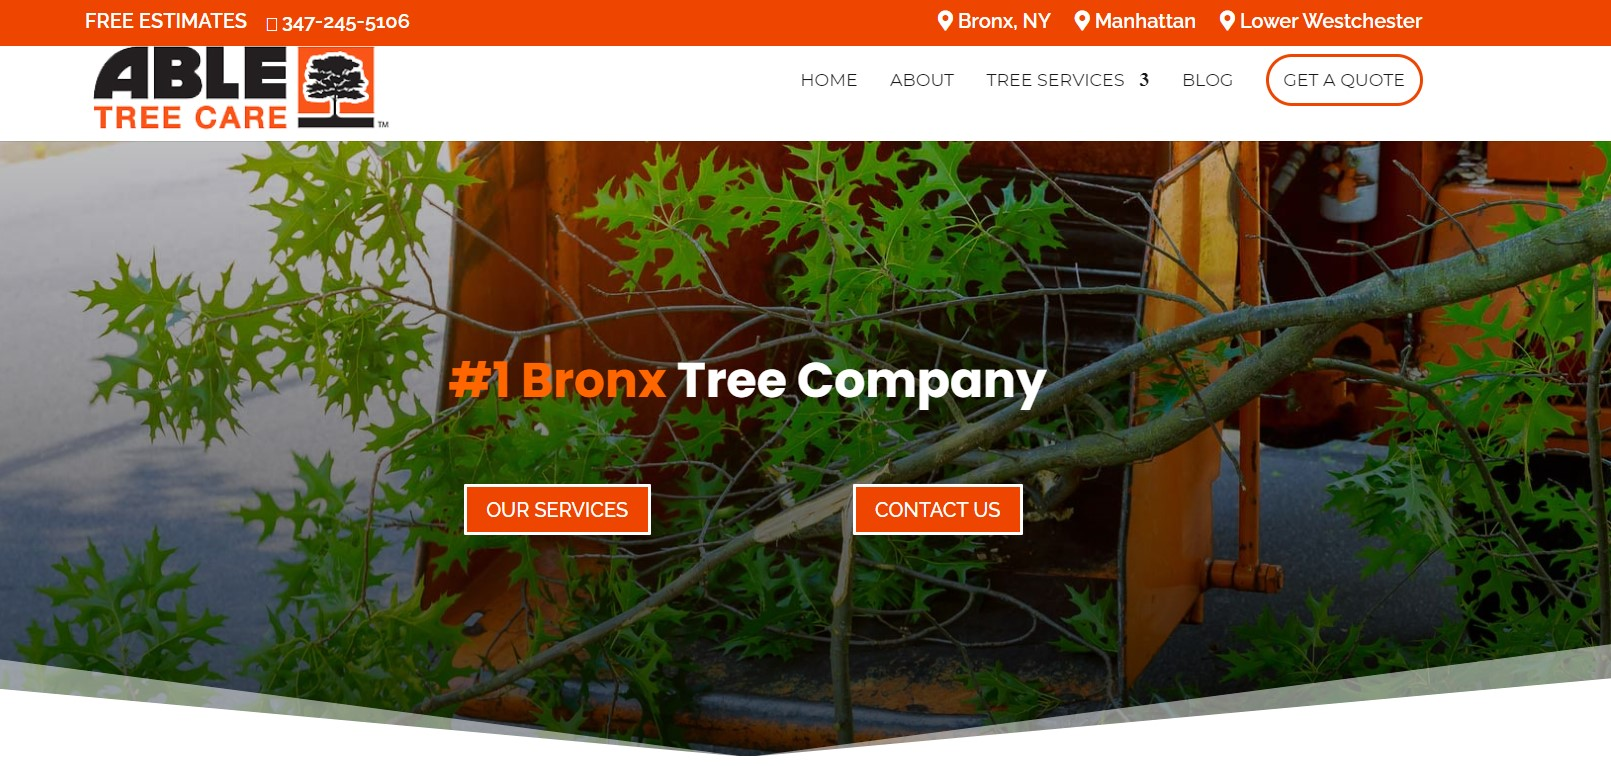 able tree service in new york